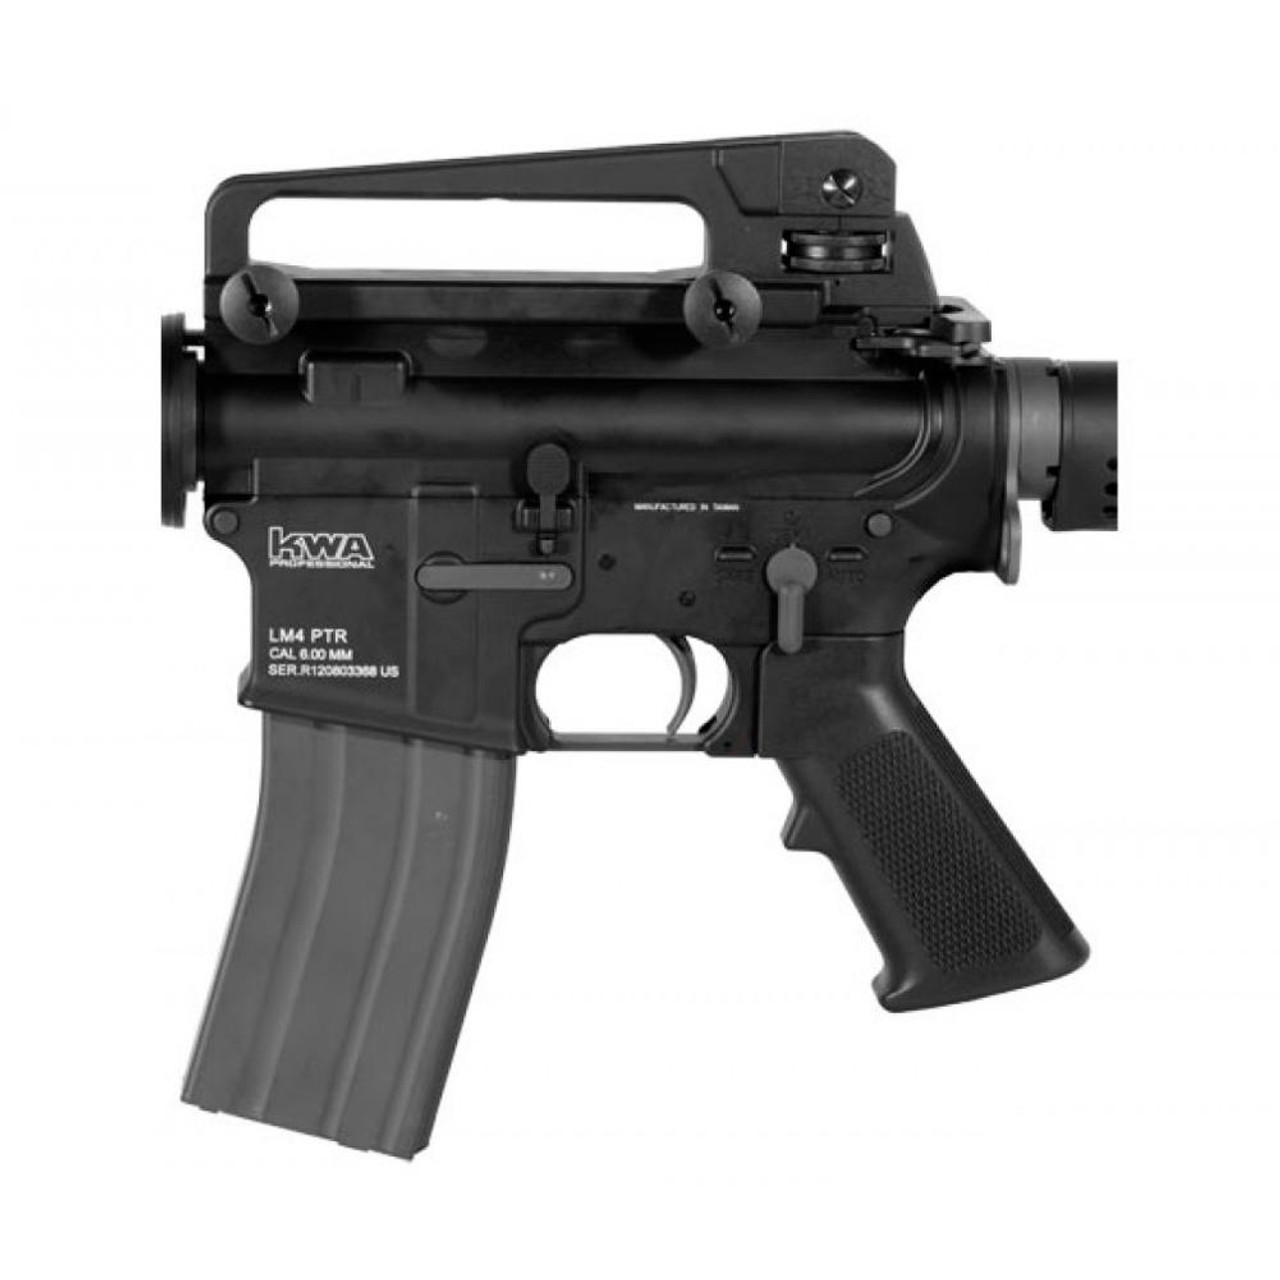 KWA LM4 PTR 6mm 40rd Airsoft Rifle (103-00201)